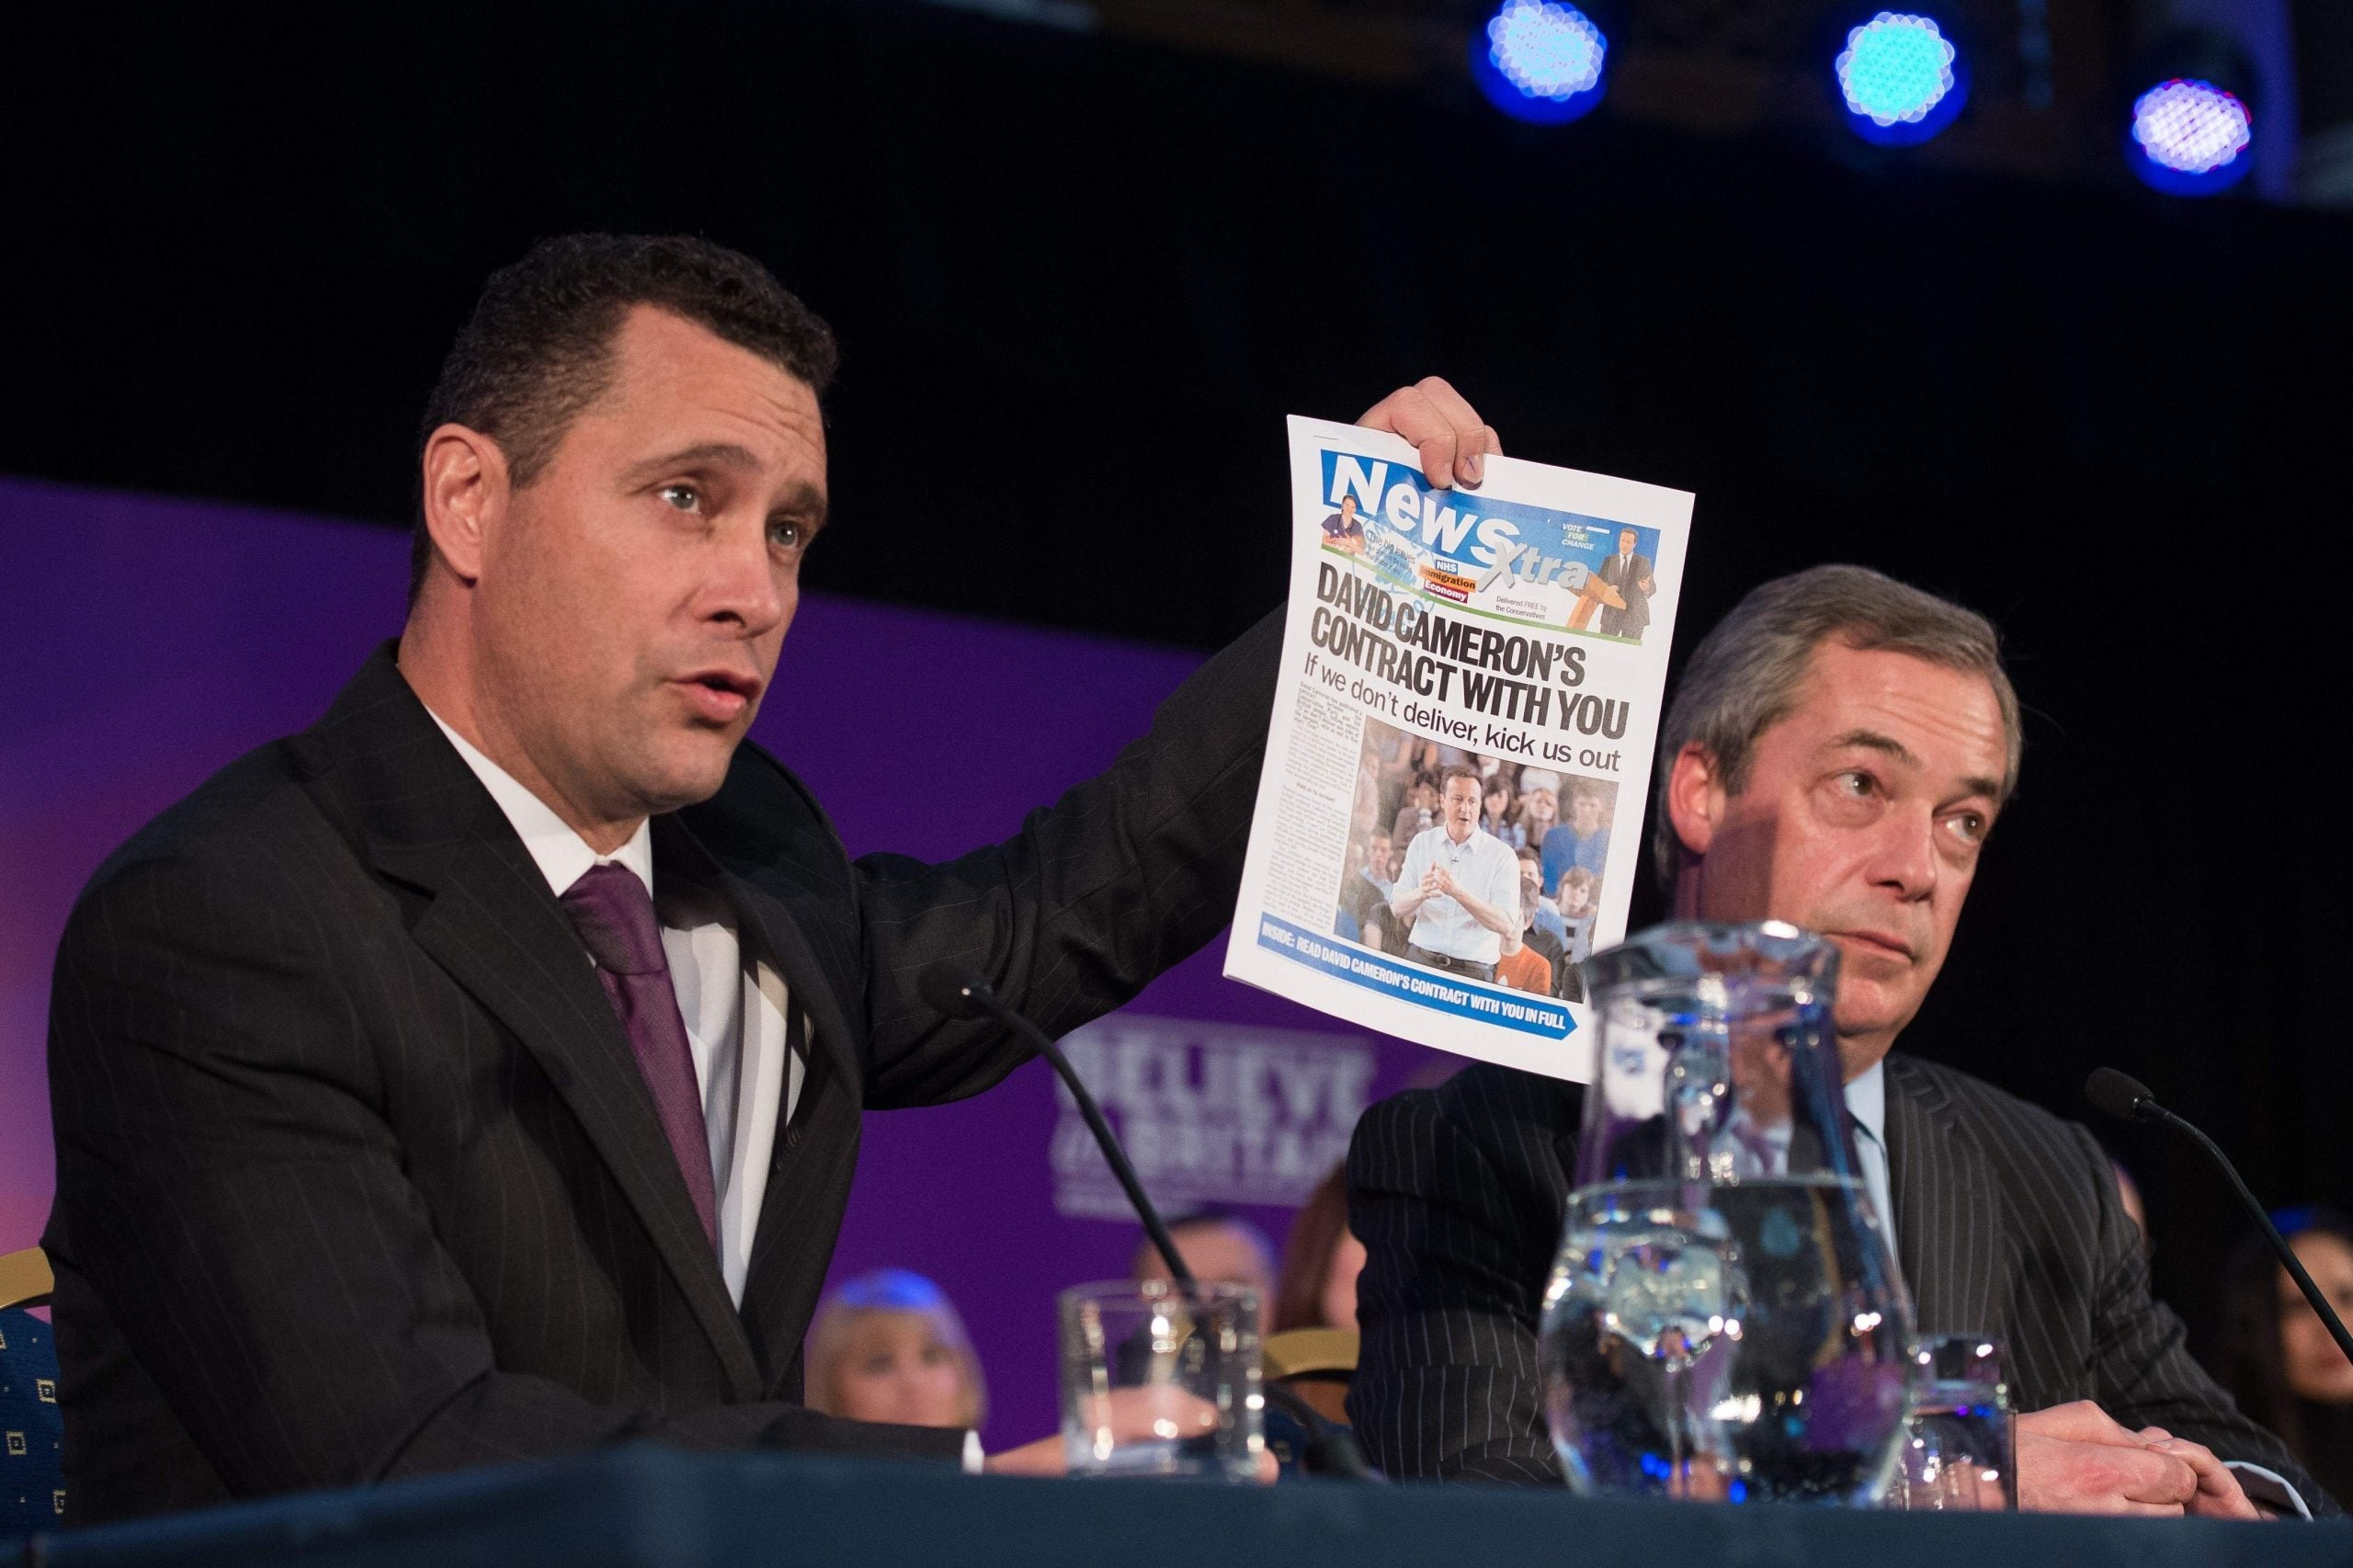 What now for Ukip's identity, as Steven Woolfe is excluded from the leadership election?